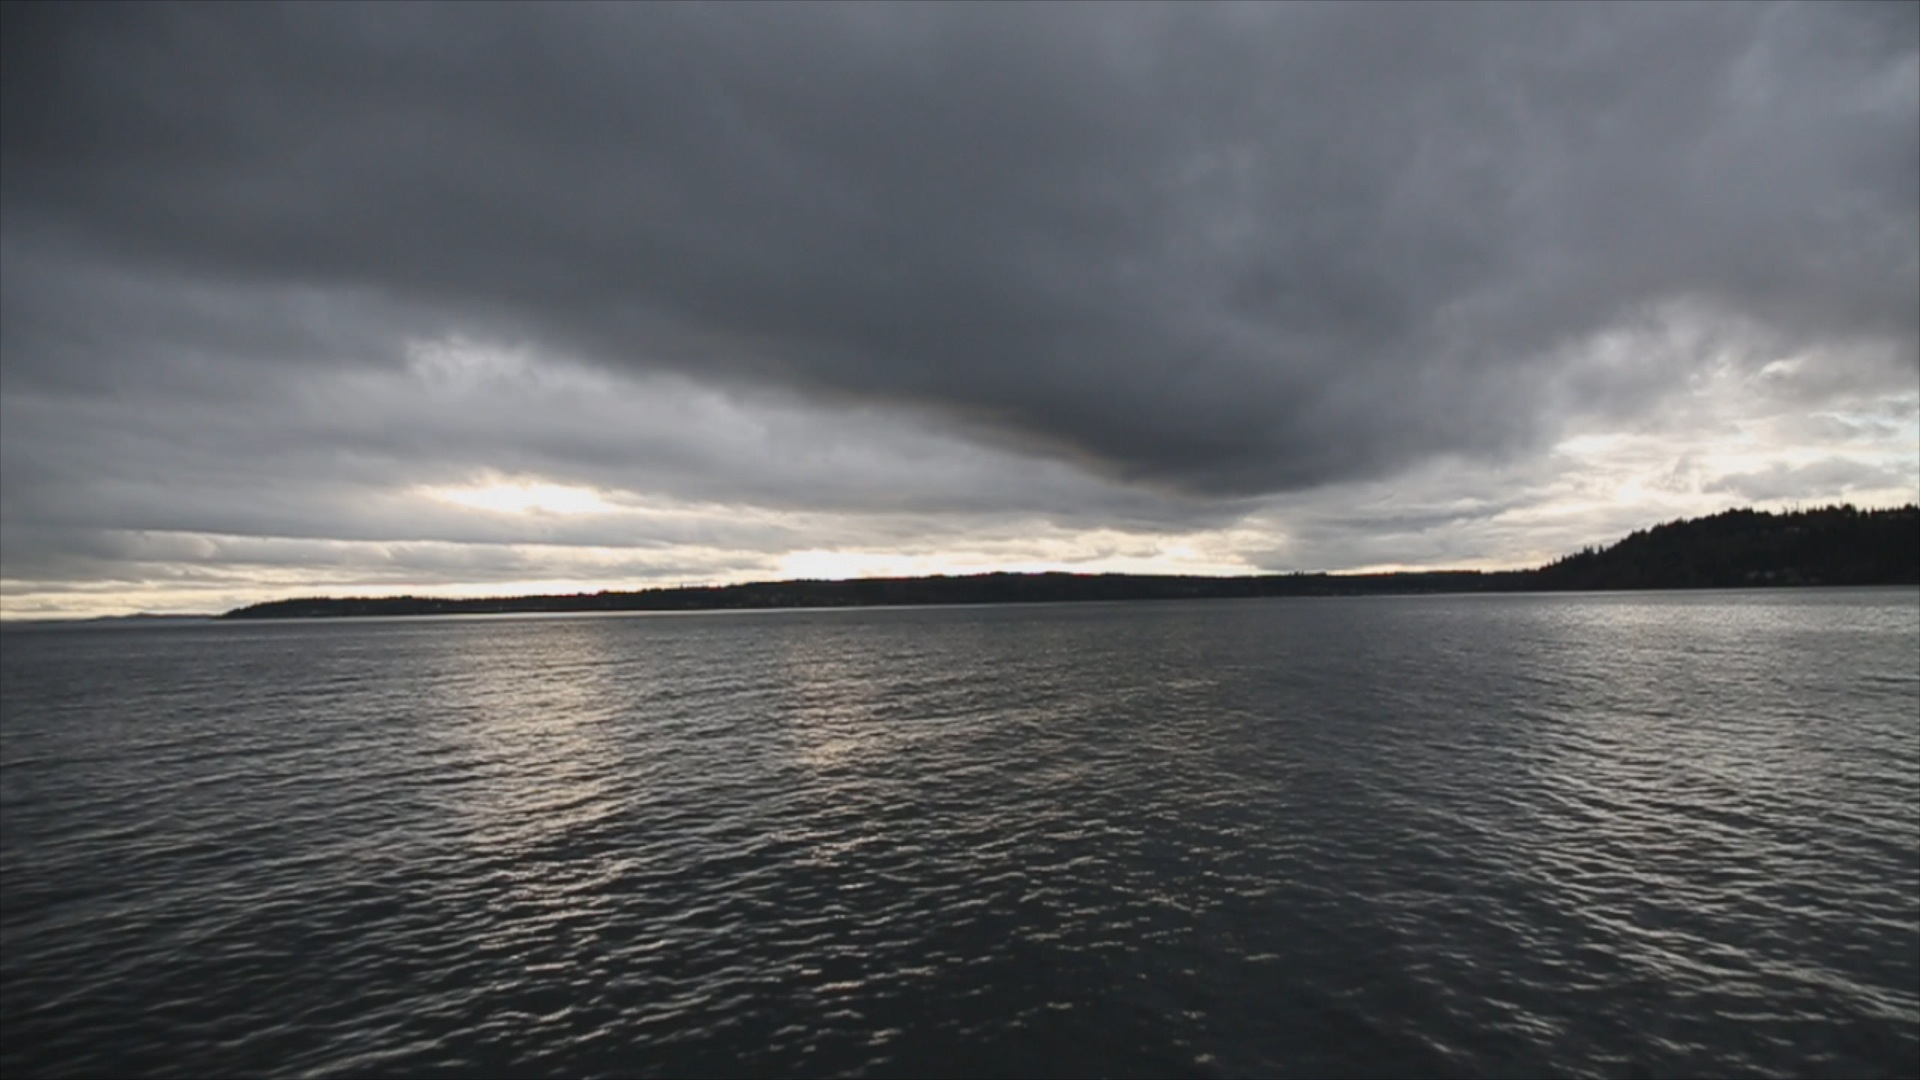 Puget Sound - heading to interview former NFL player, author and activist Dave Meggyesy (January 2013)